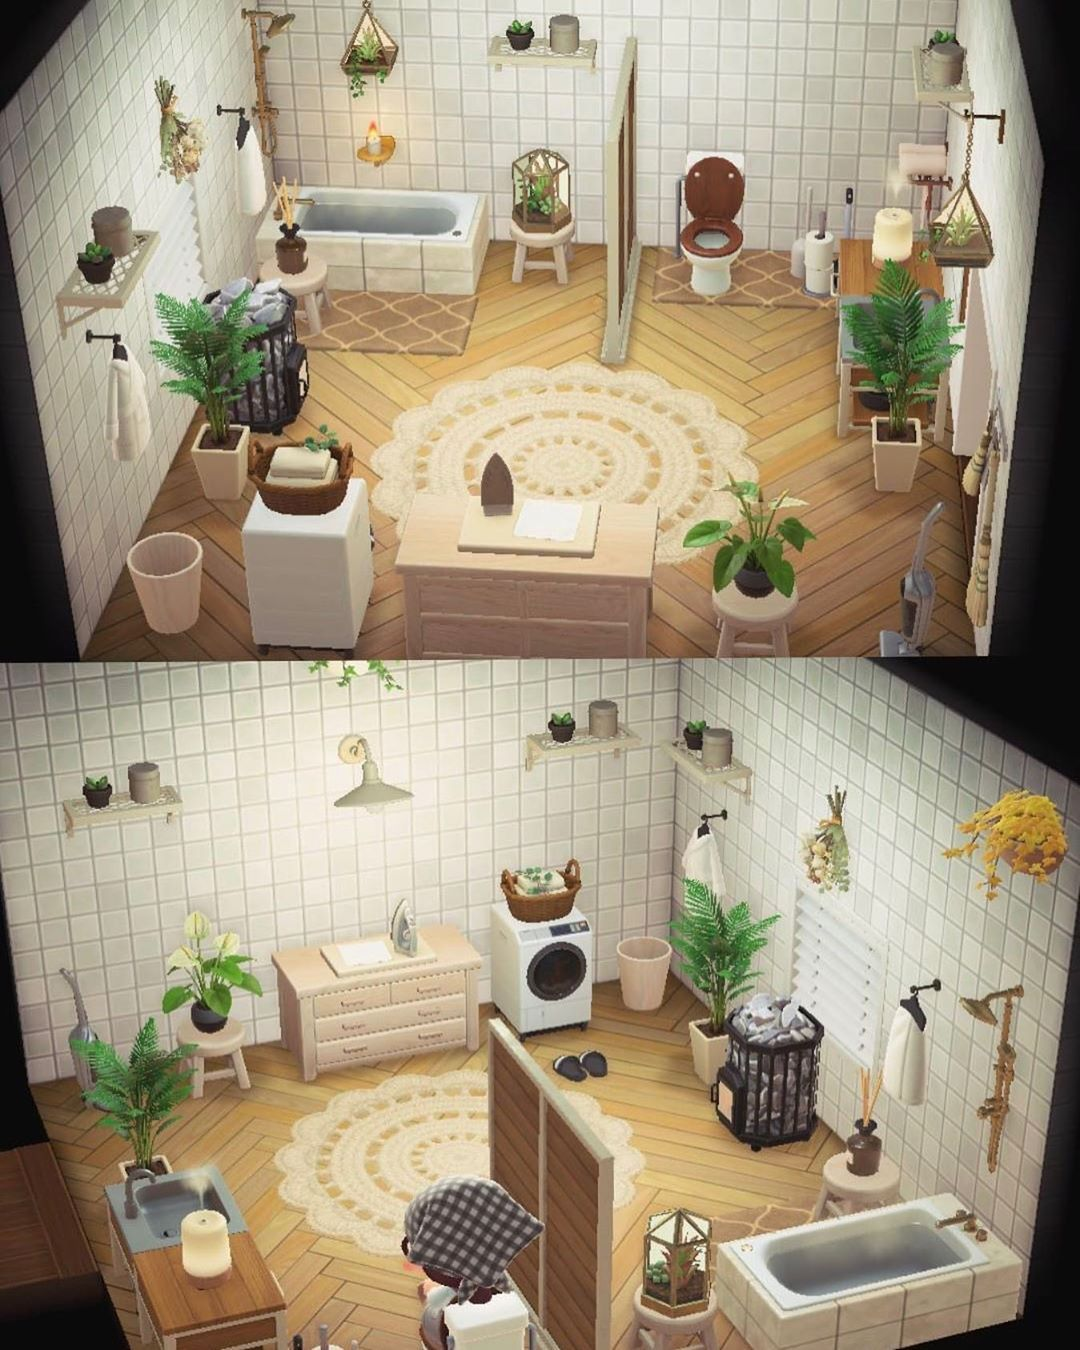 Animal Crossing New Horizons On Instagram This Bathroom Is Beautiful Credit To Kanrawastake In 2020 Animal Crossing 3ds Animal Crossing Animal Crossing Wild World